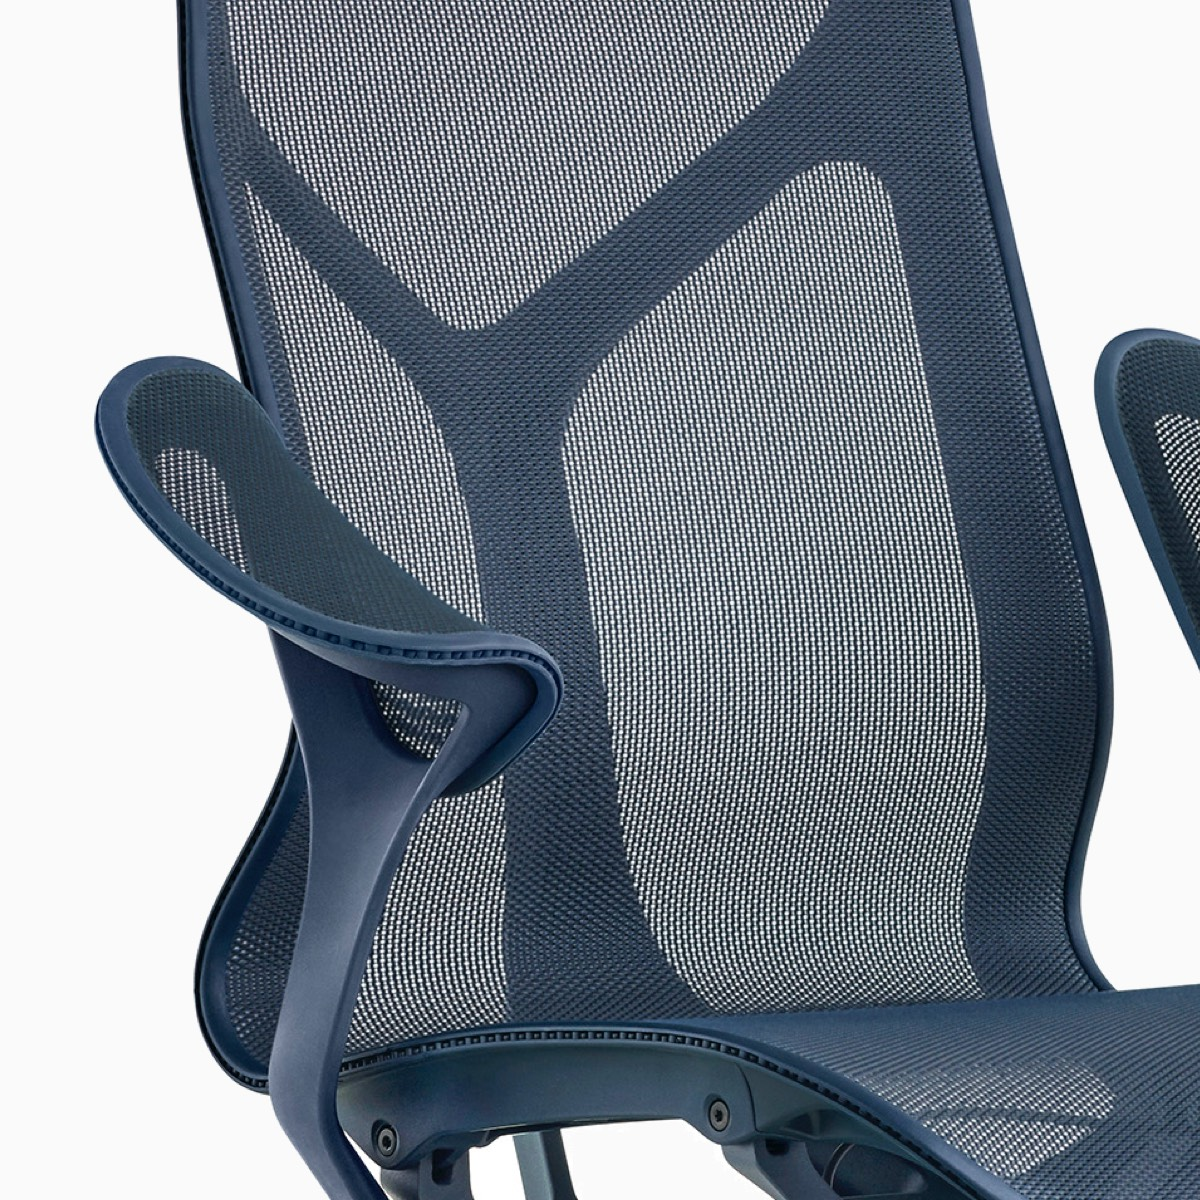 Front view of a navy mid-back Cosm Chair.